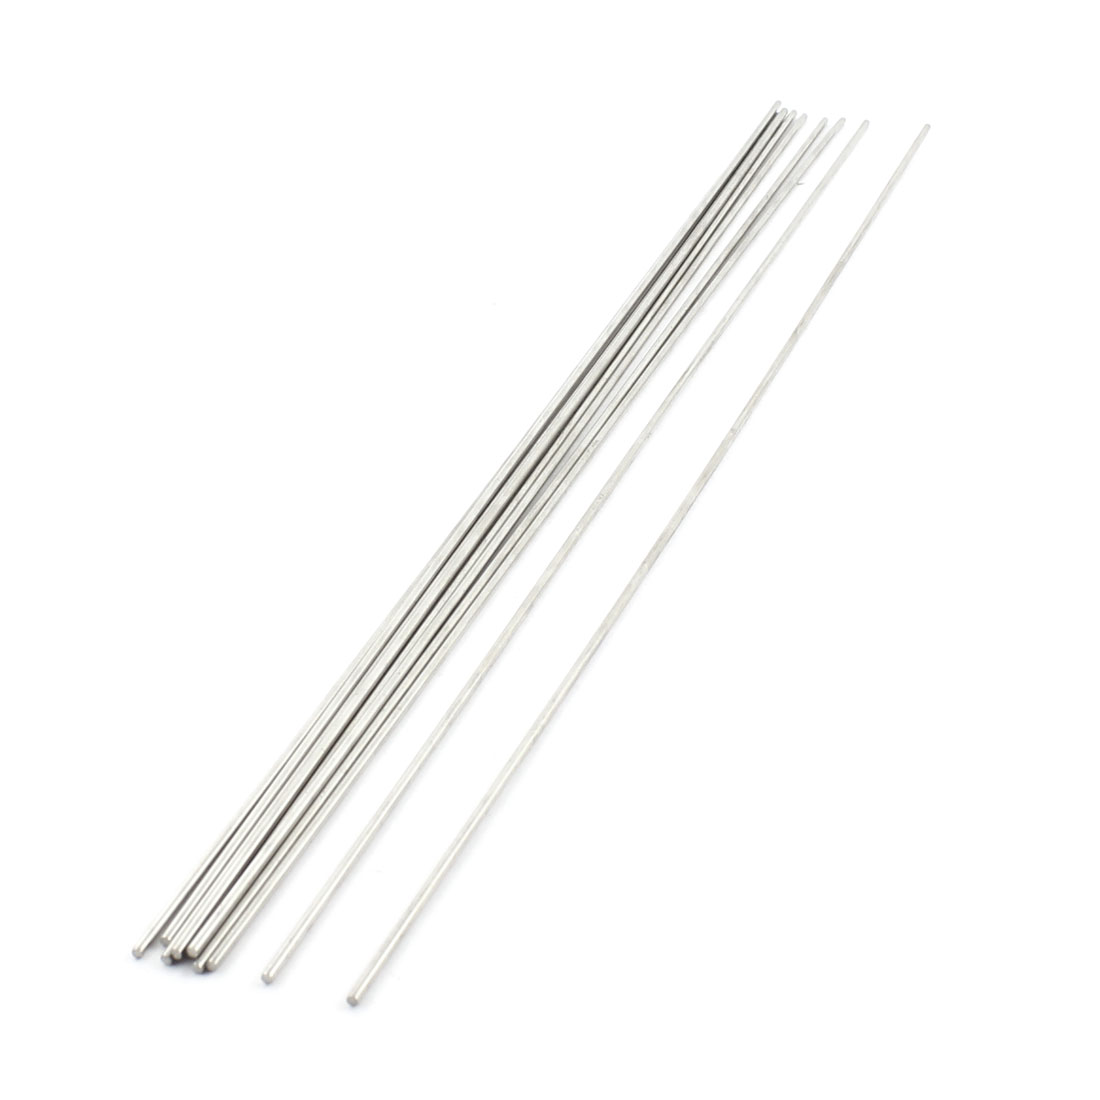 10Pcs 2mm Dia 350mm Length Stainless Steel Round Rod Shaft for RC Toy Car